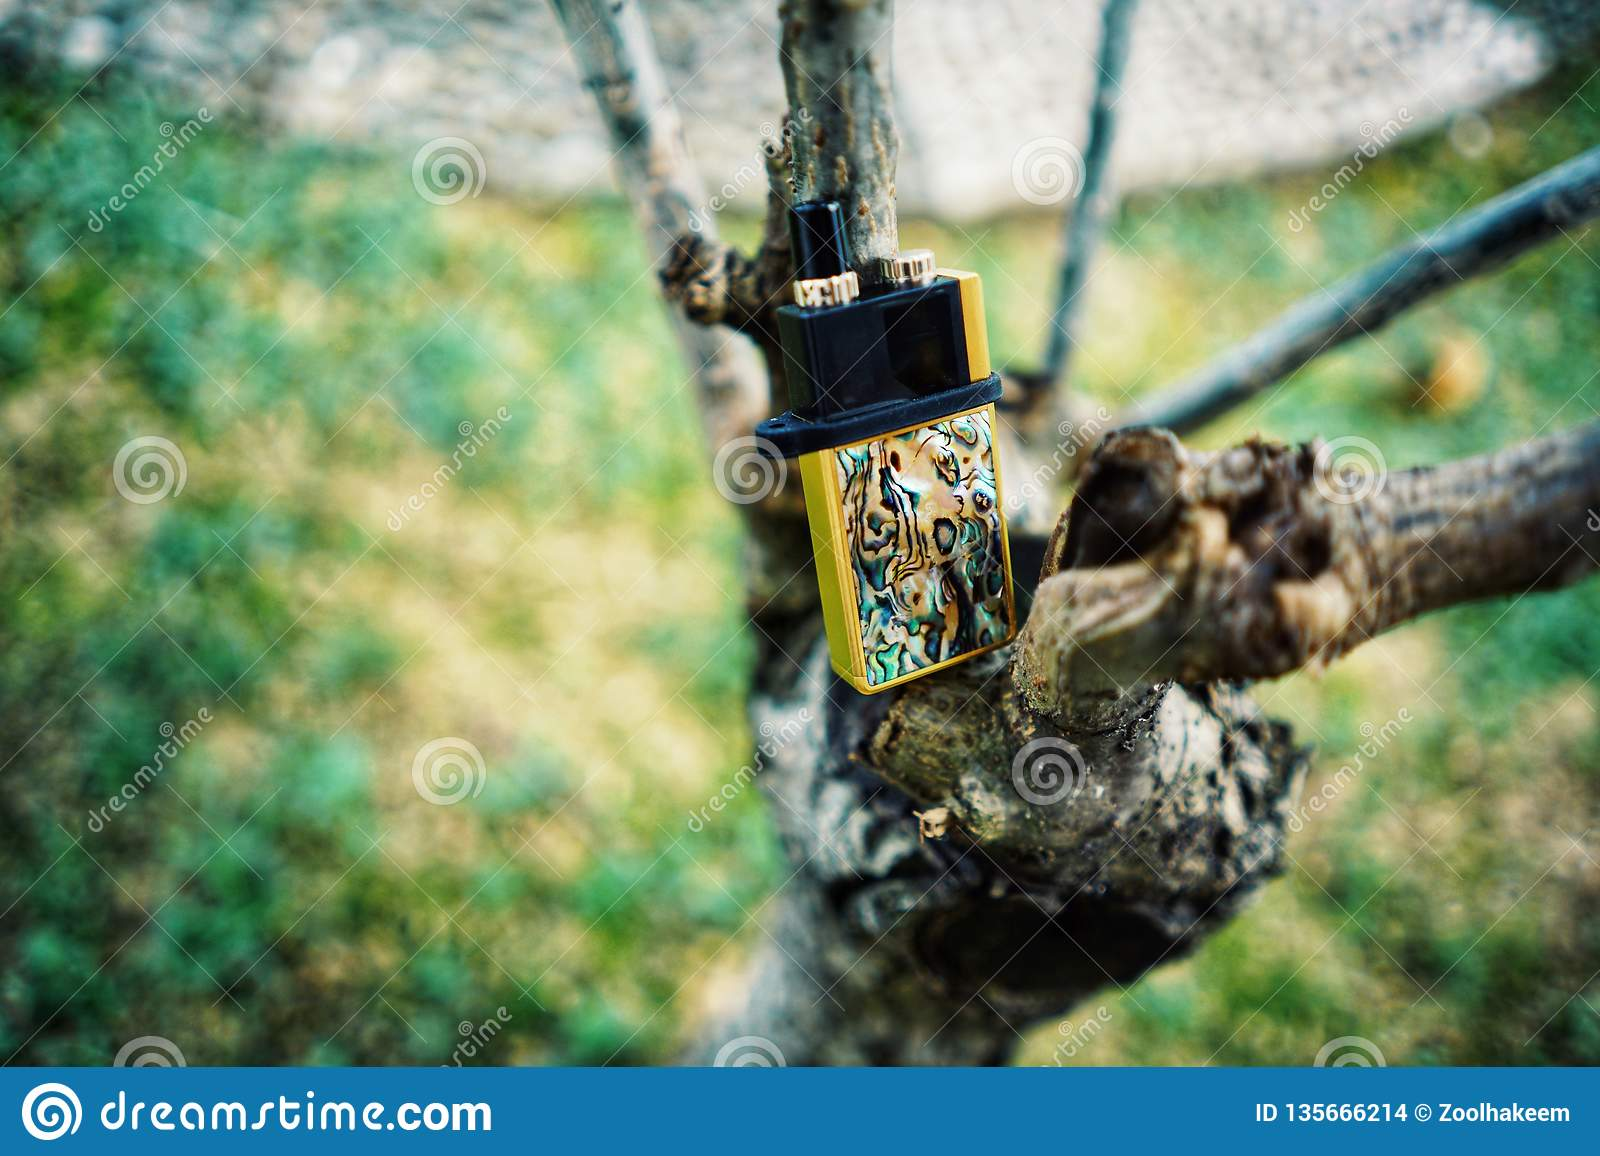 New Vape pod system for quitting smoking habit alternative on small tree branches